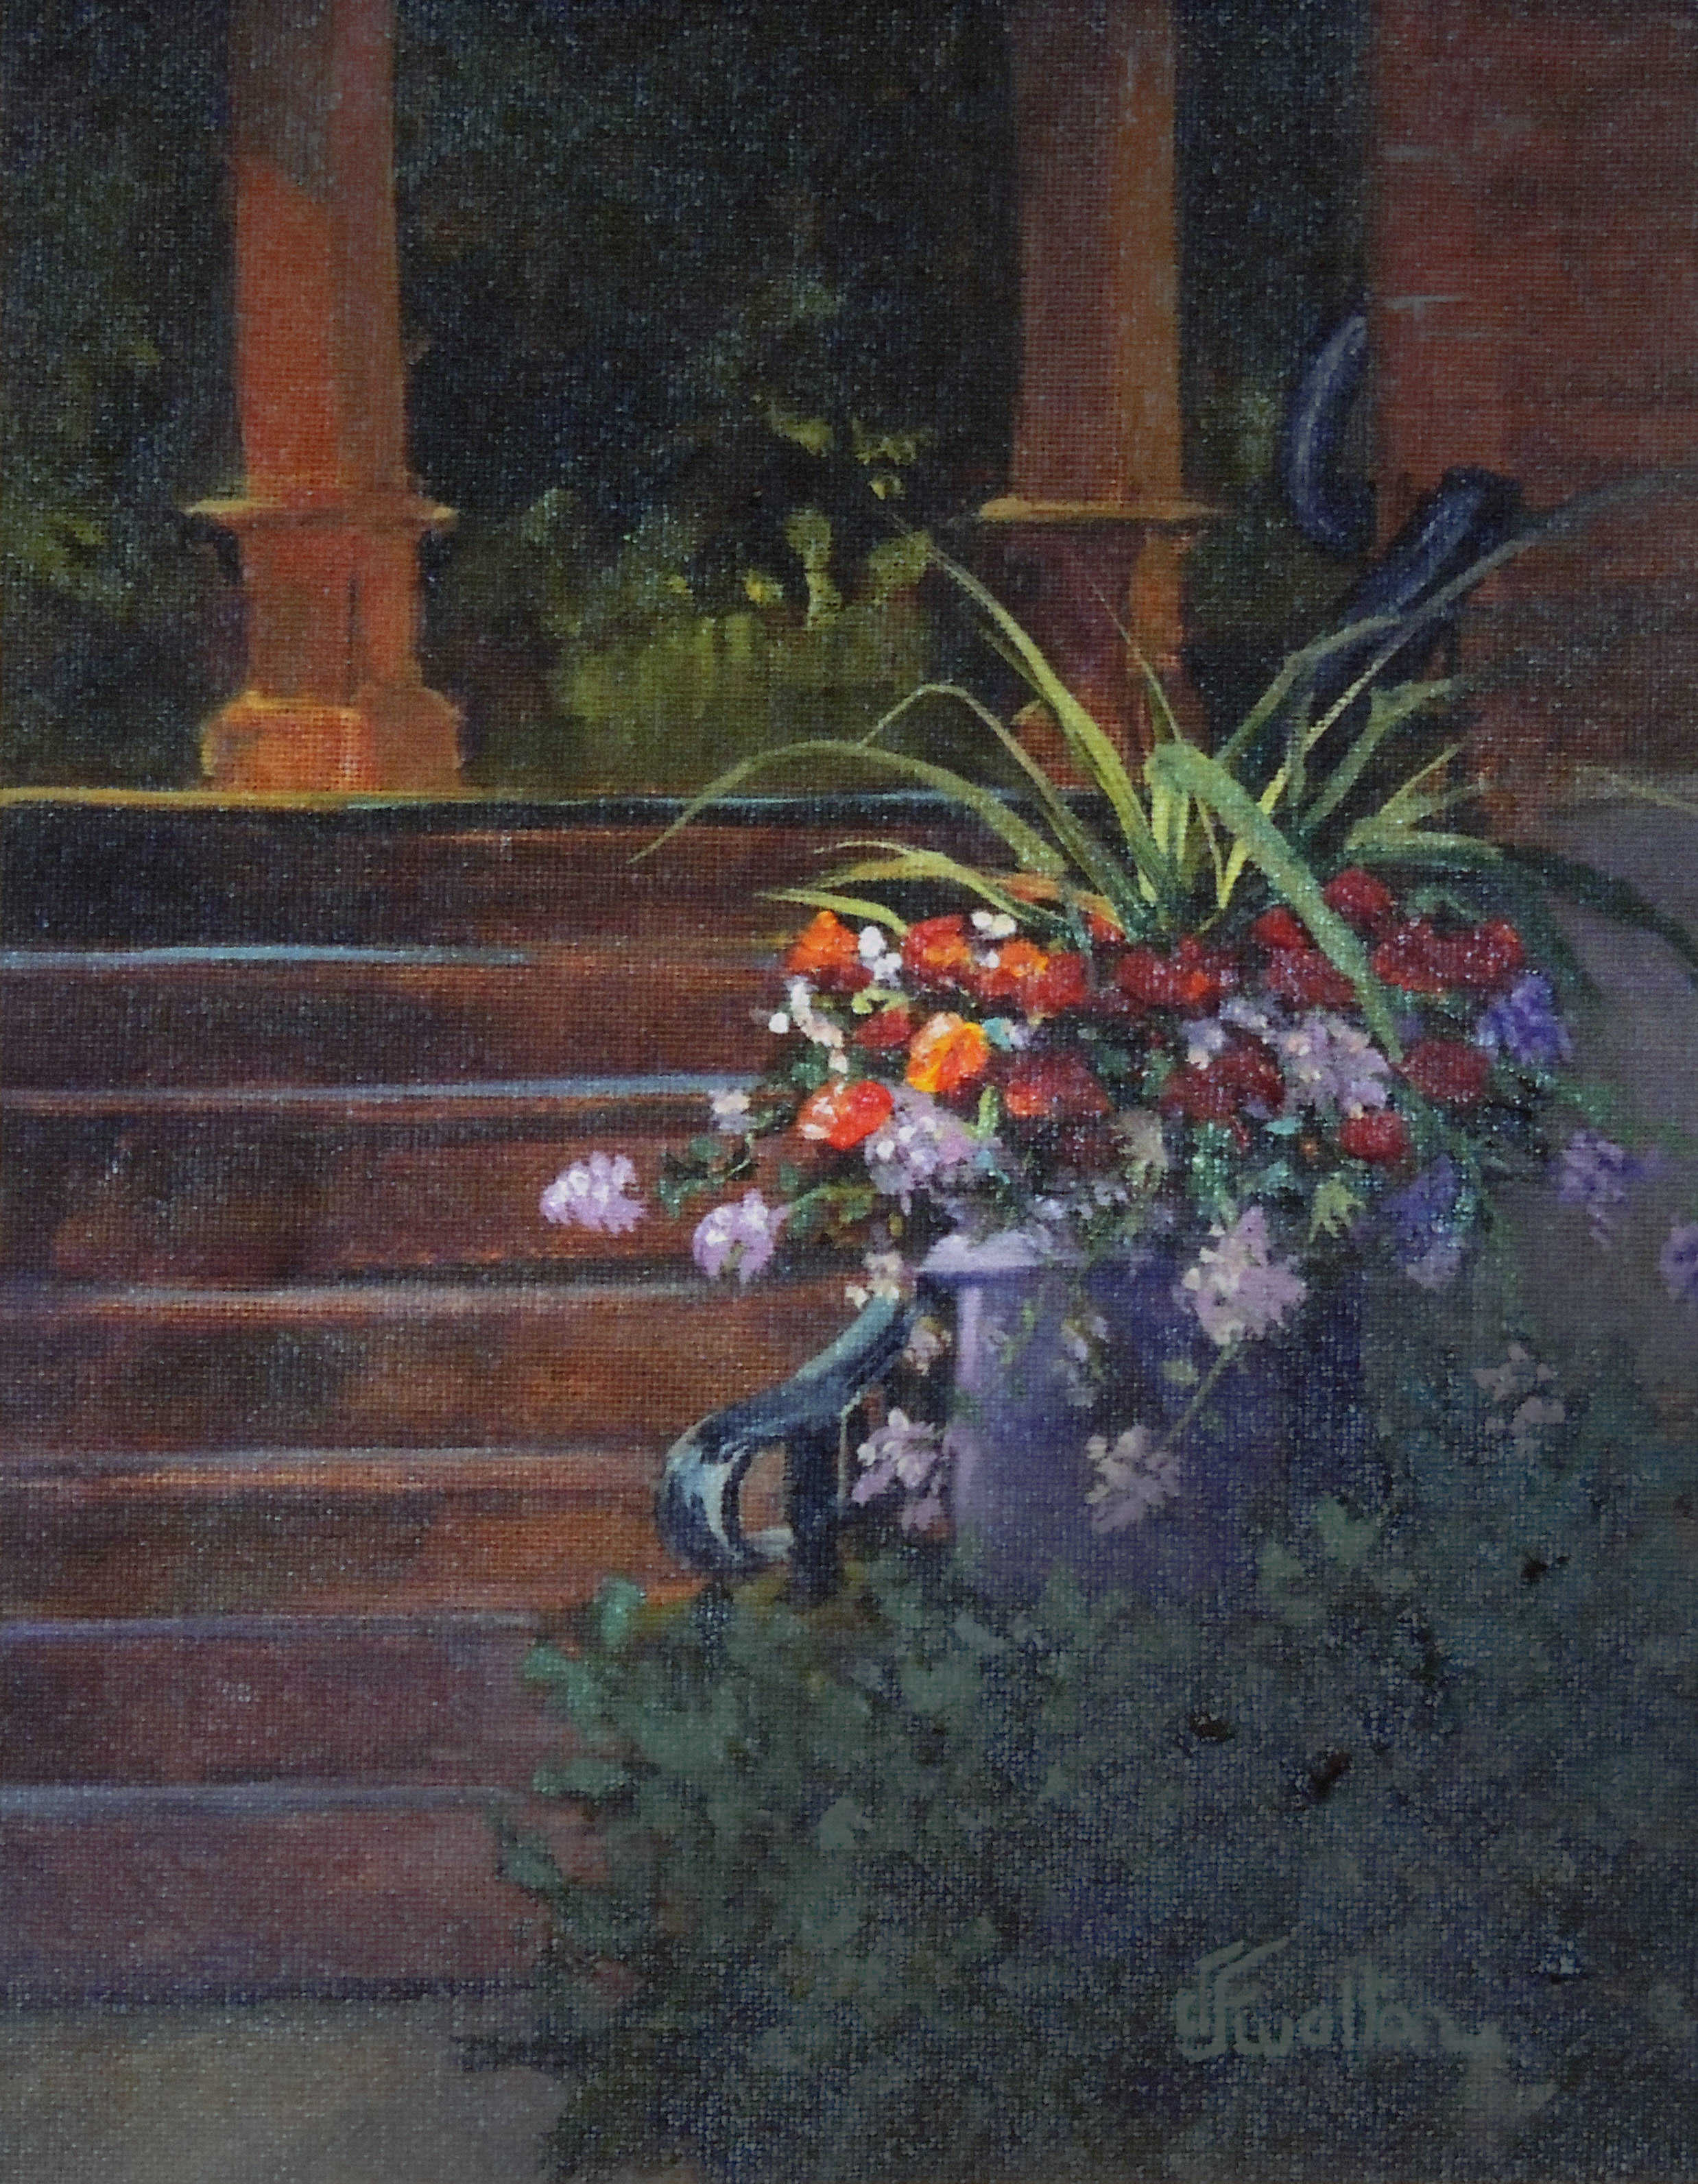 Judy Walton | RUTHERFORD B. HAYES CENTER SUMMER BLOOMS | oil | frame size 12x14